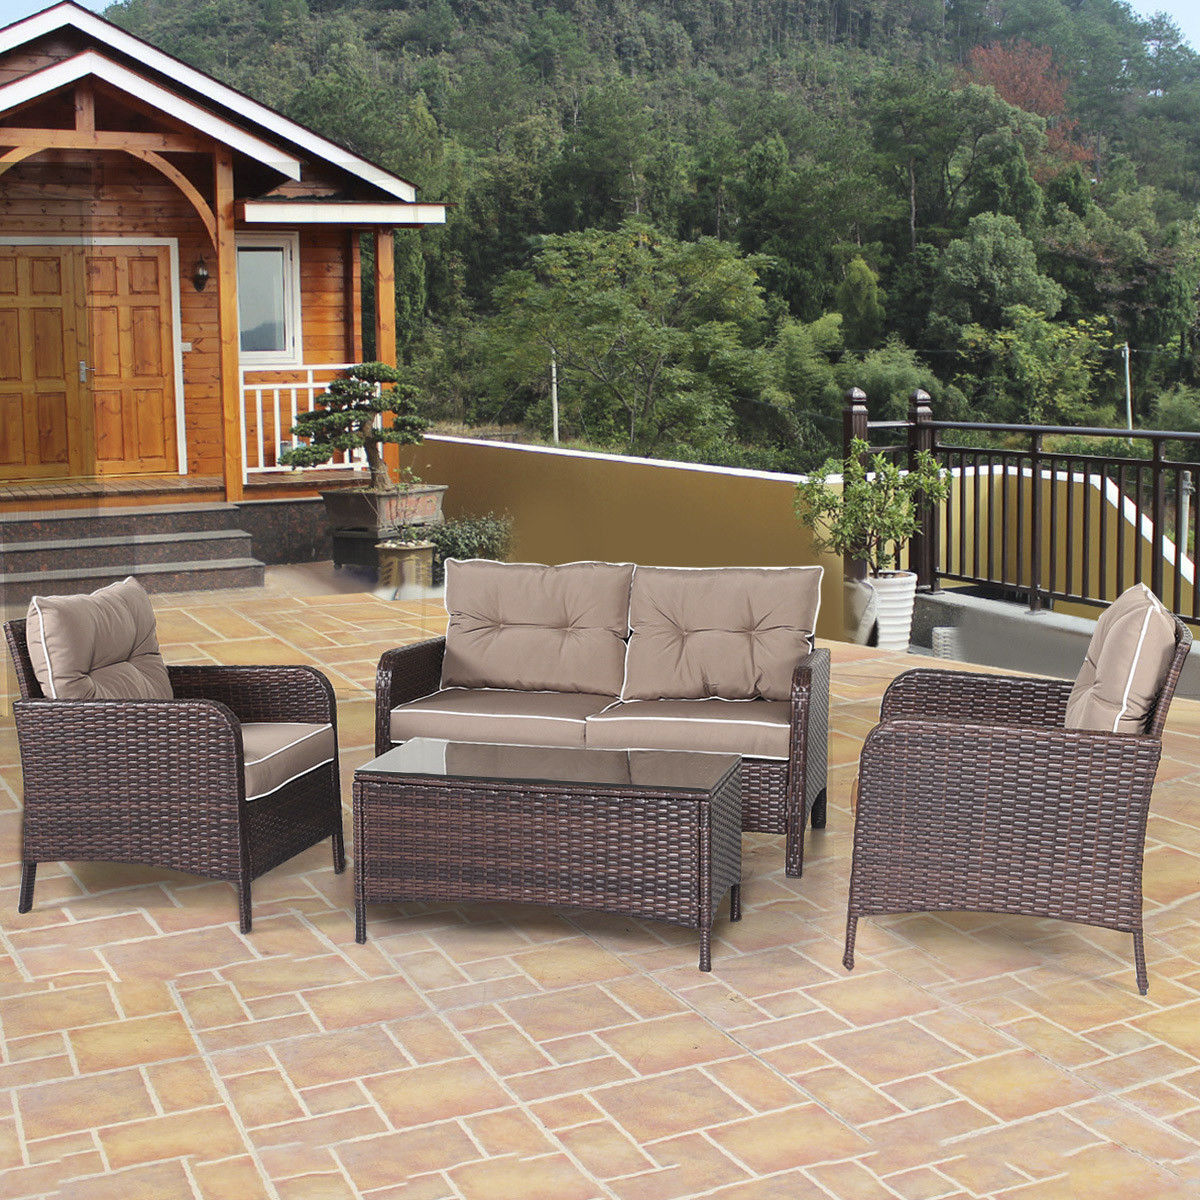 Costway 4 PCS Outdoor Patio Rattan Wicker Furniture Set Sofa Loveseat W  Cushions by Costway